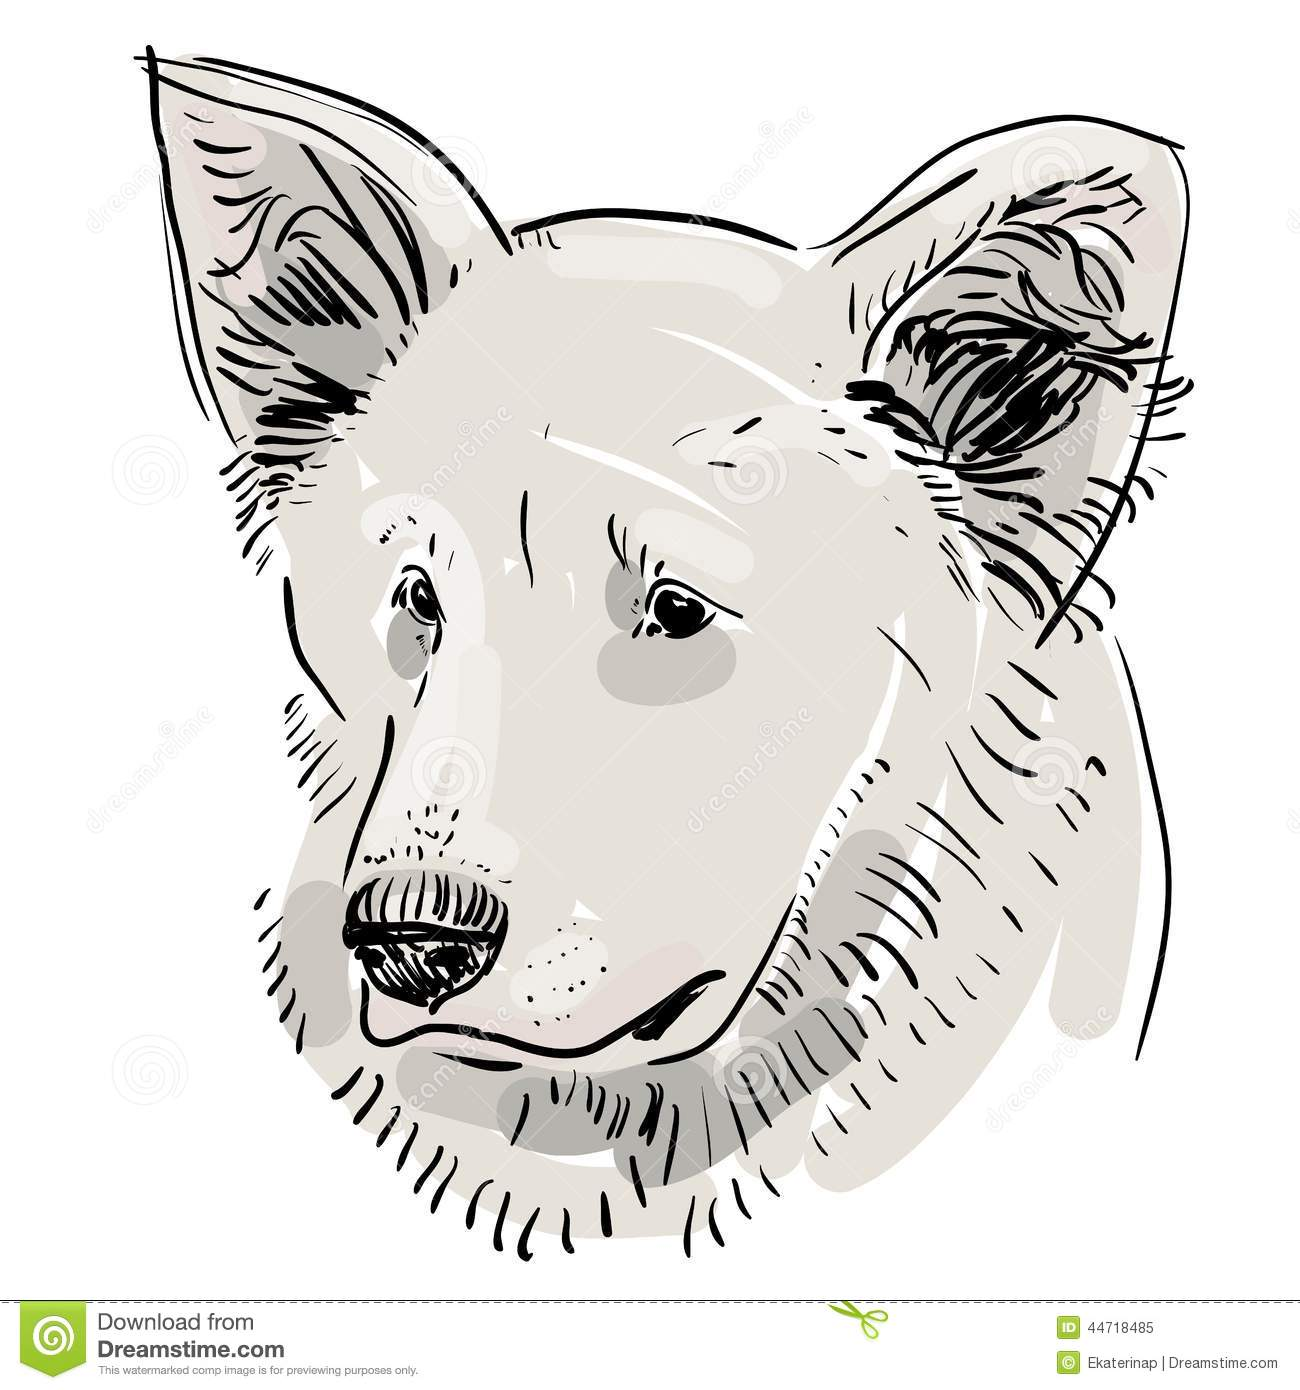 Contour Line Drawing Of A Dog : Head muzzle the dog shepherd sketch drawing black